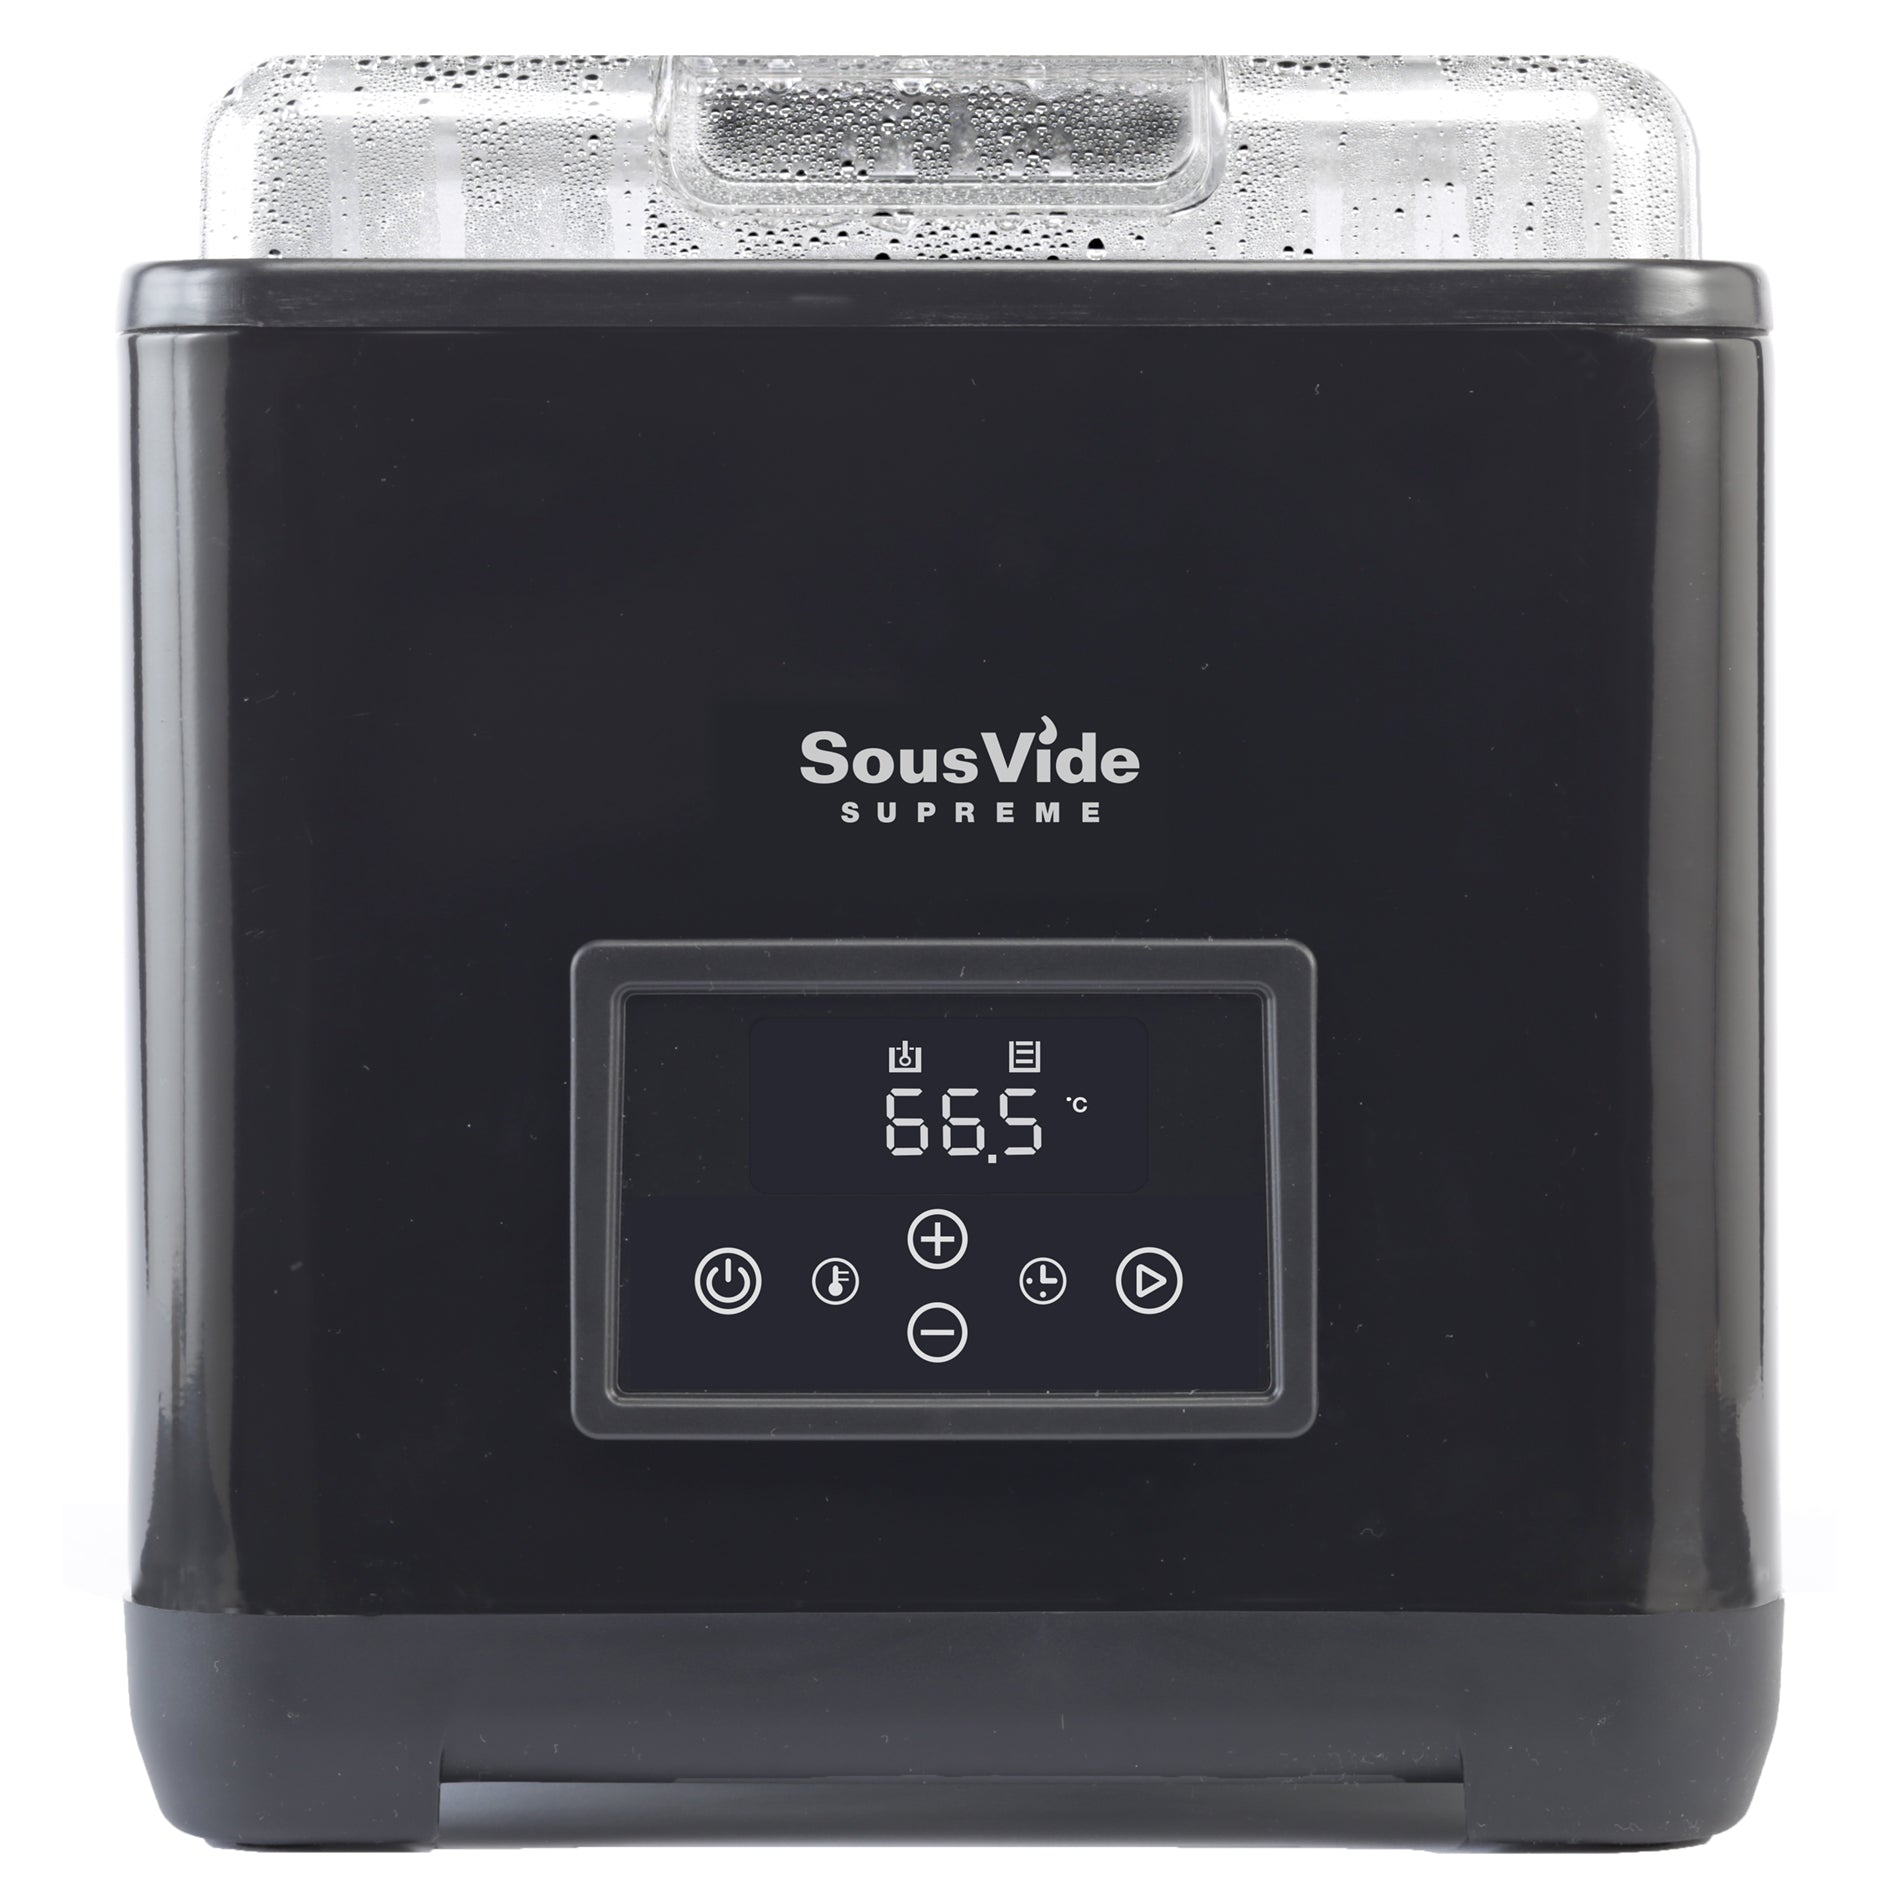 SousVide Supreme Demi Touch water oven front view